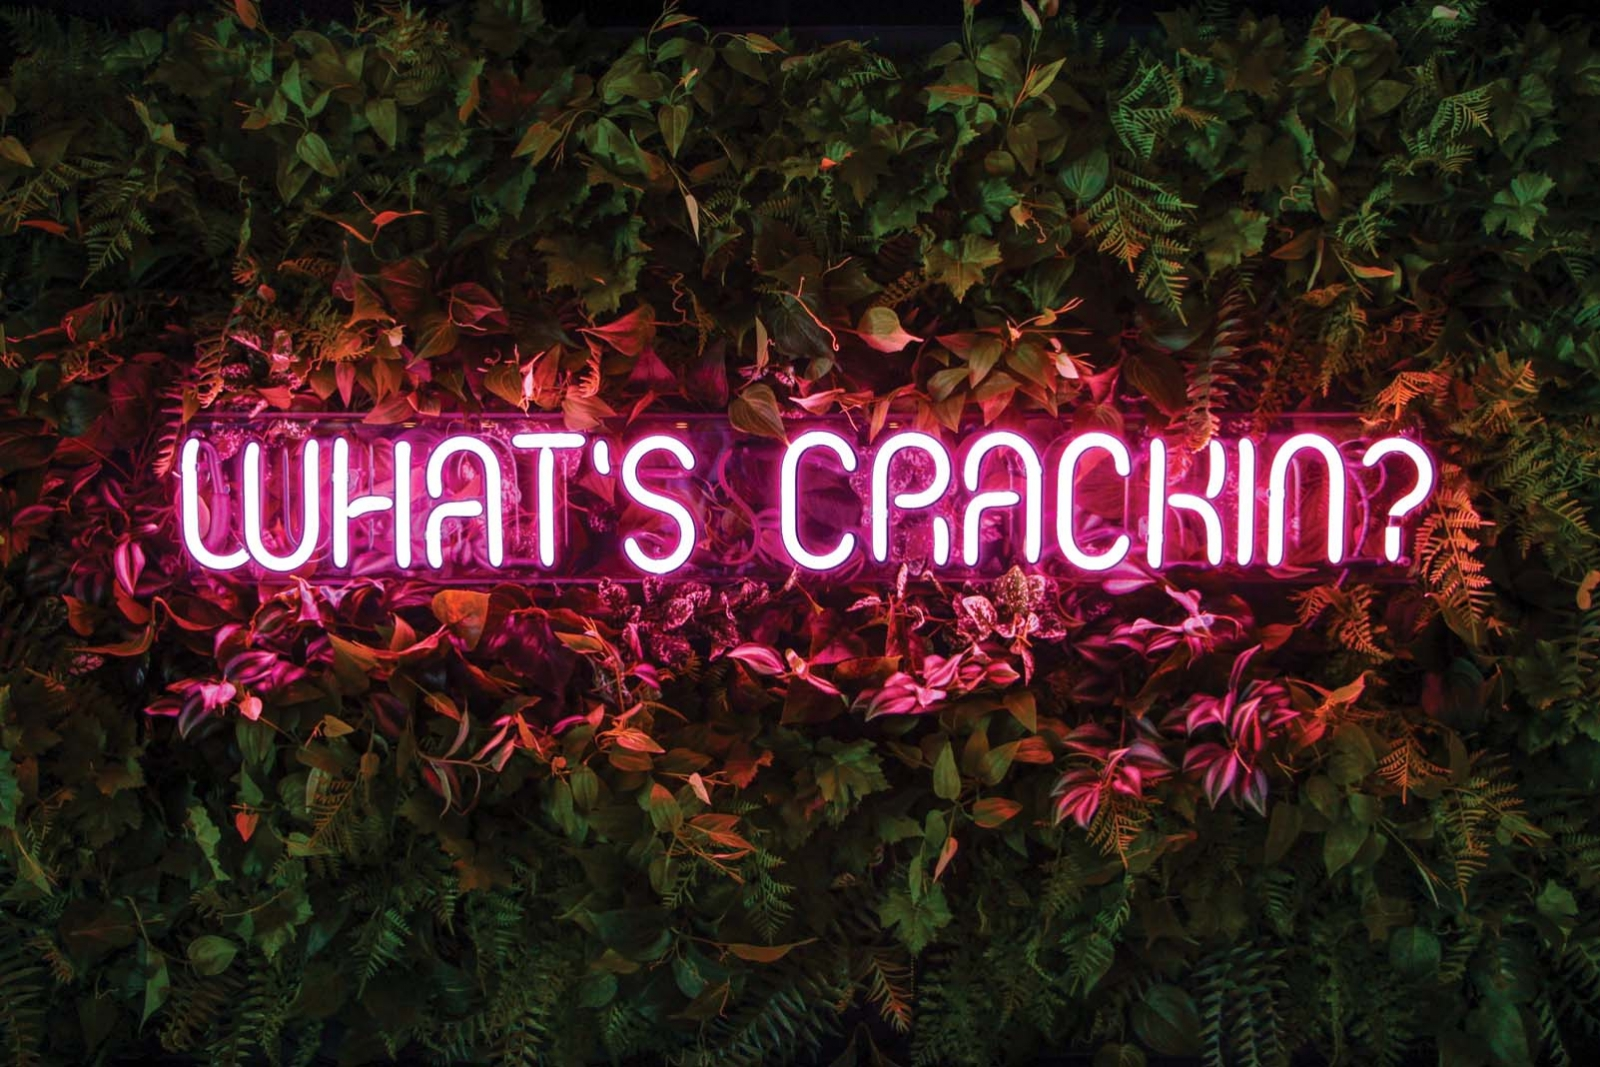 """A neon sign that says """"What's crackin'?"""""""